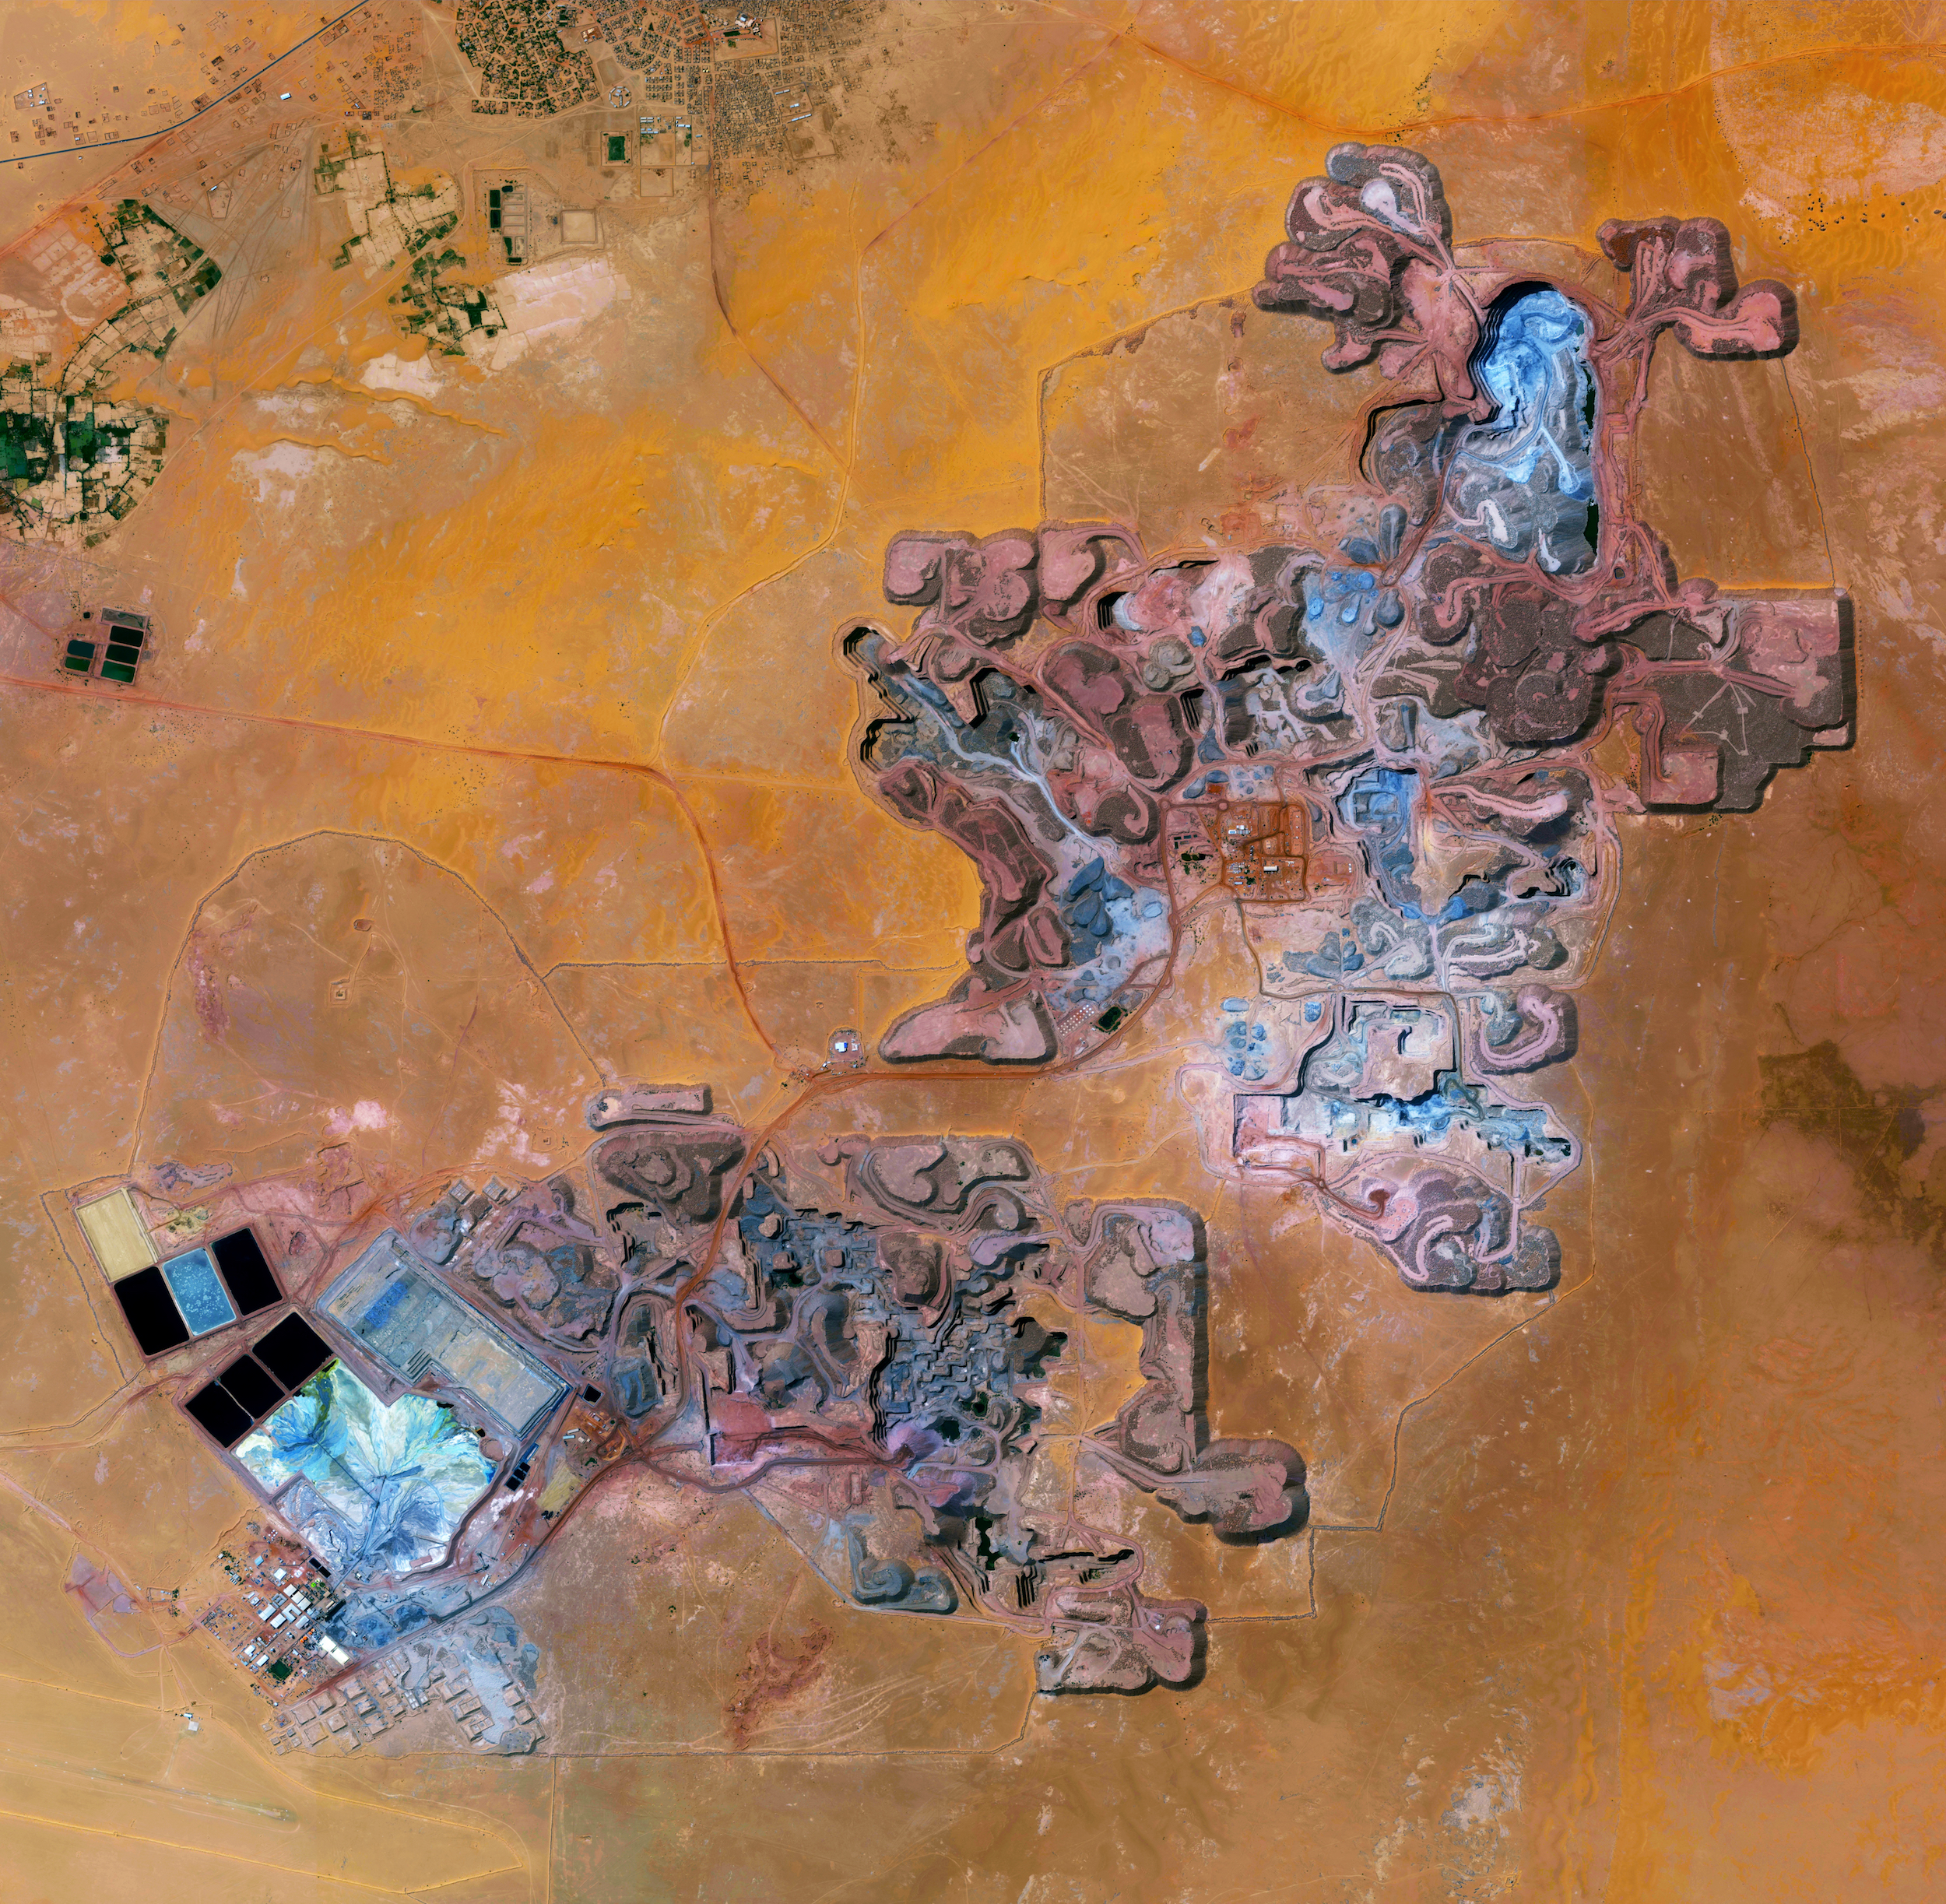 """10/22/2016  Arlit Uranium Mine  Arlit, Niger  18°44′N 7°23′E    With just three days until the release of """"Overview"""", I'm sharing a few of my favorite images from the book. Here's one from the chapter all about mining, 'Where We Extract'. The Arlit Uranium mine is located in Arlit, Niger. French nuclear power generation as well as the French nuclear weapons program are dependent on the uranium that is extracted from the mine - more than 3400 tonnes per year."""